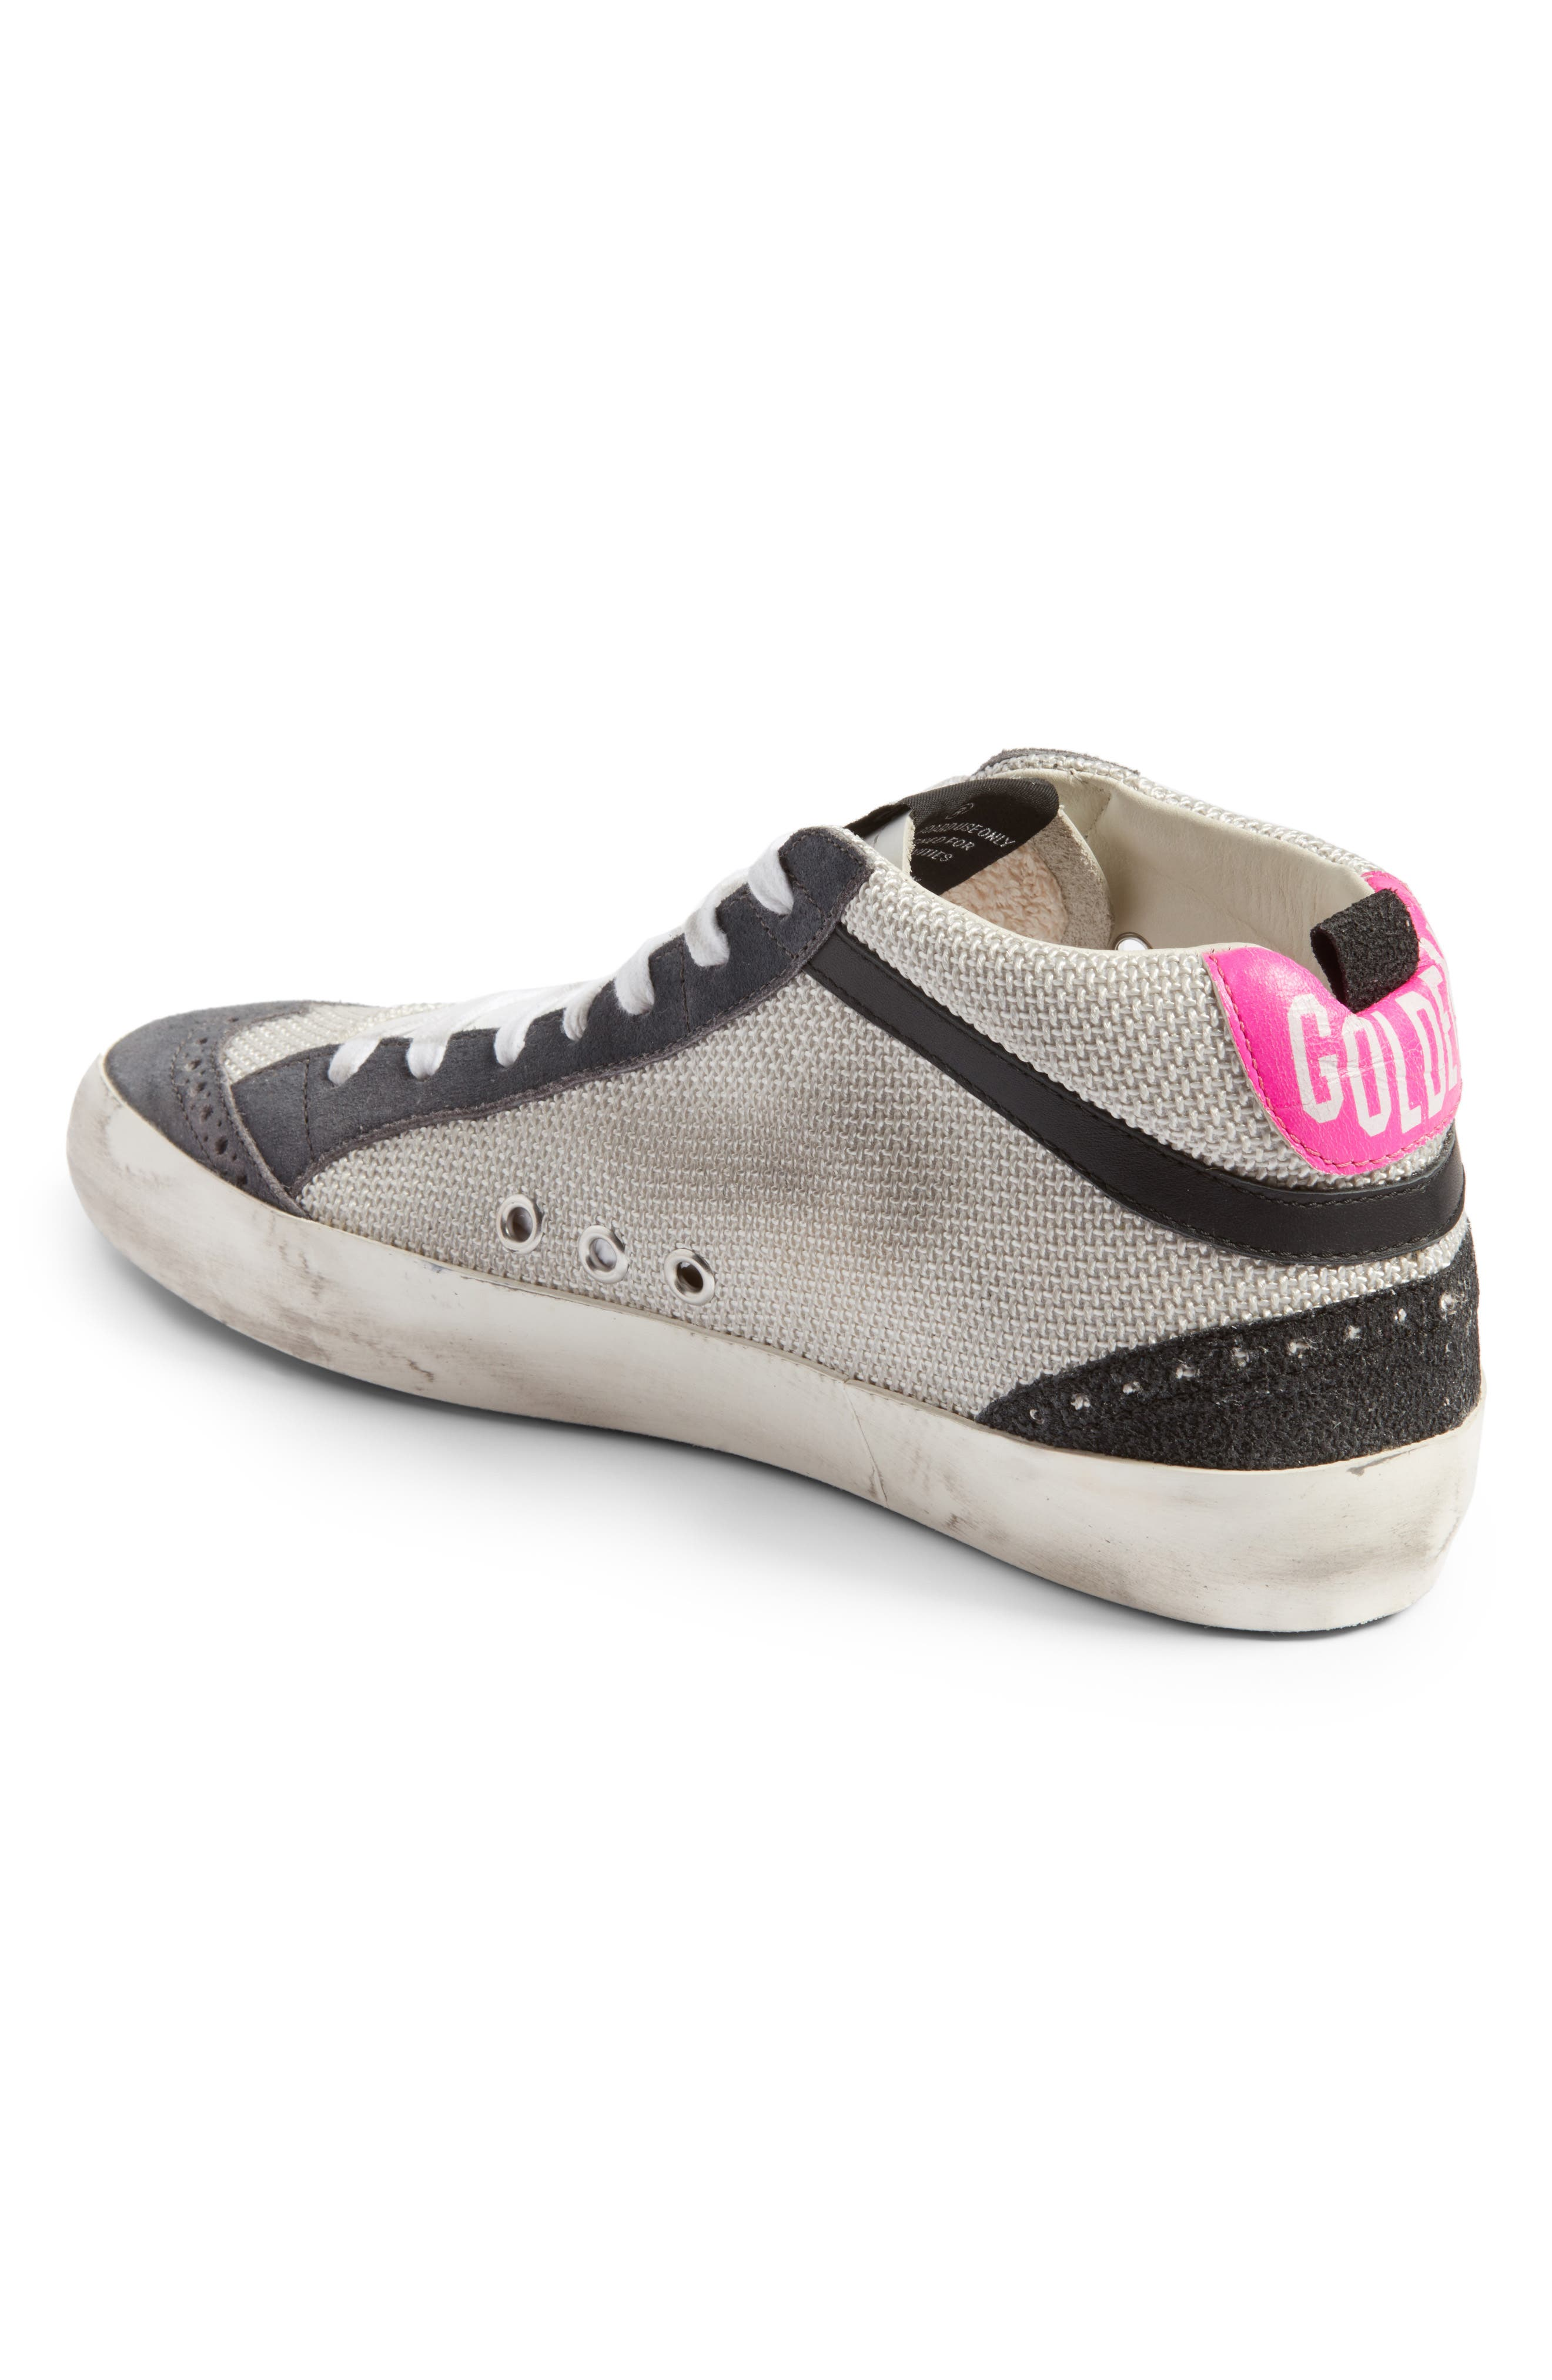 Star Mid Top Sneaker,                             Alternate thumbnail 2, color,                             Grey/ Pink